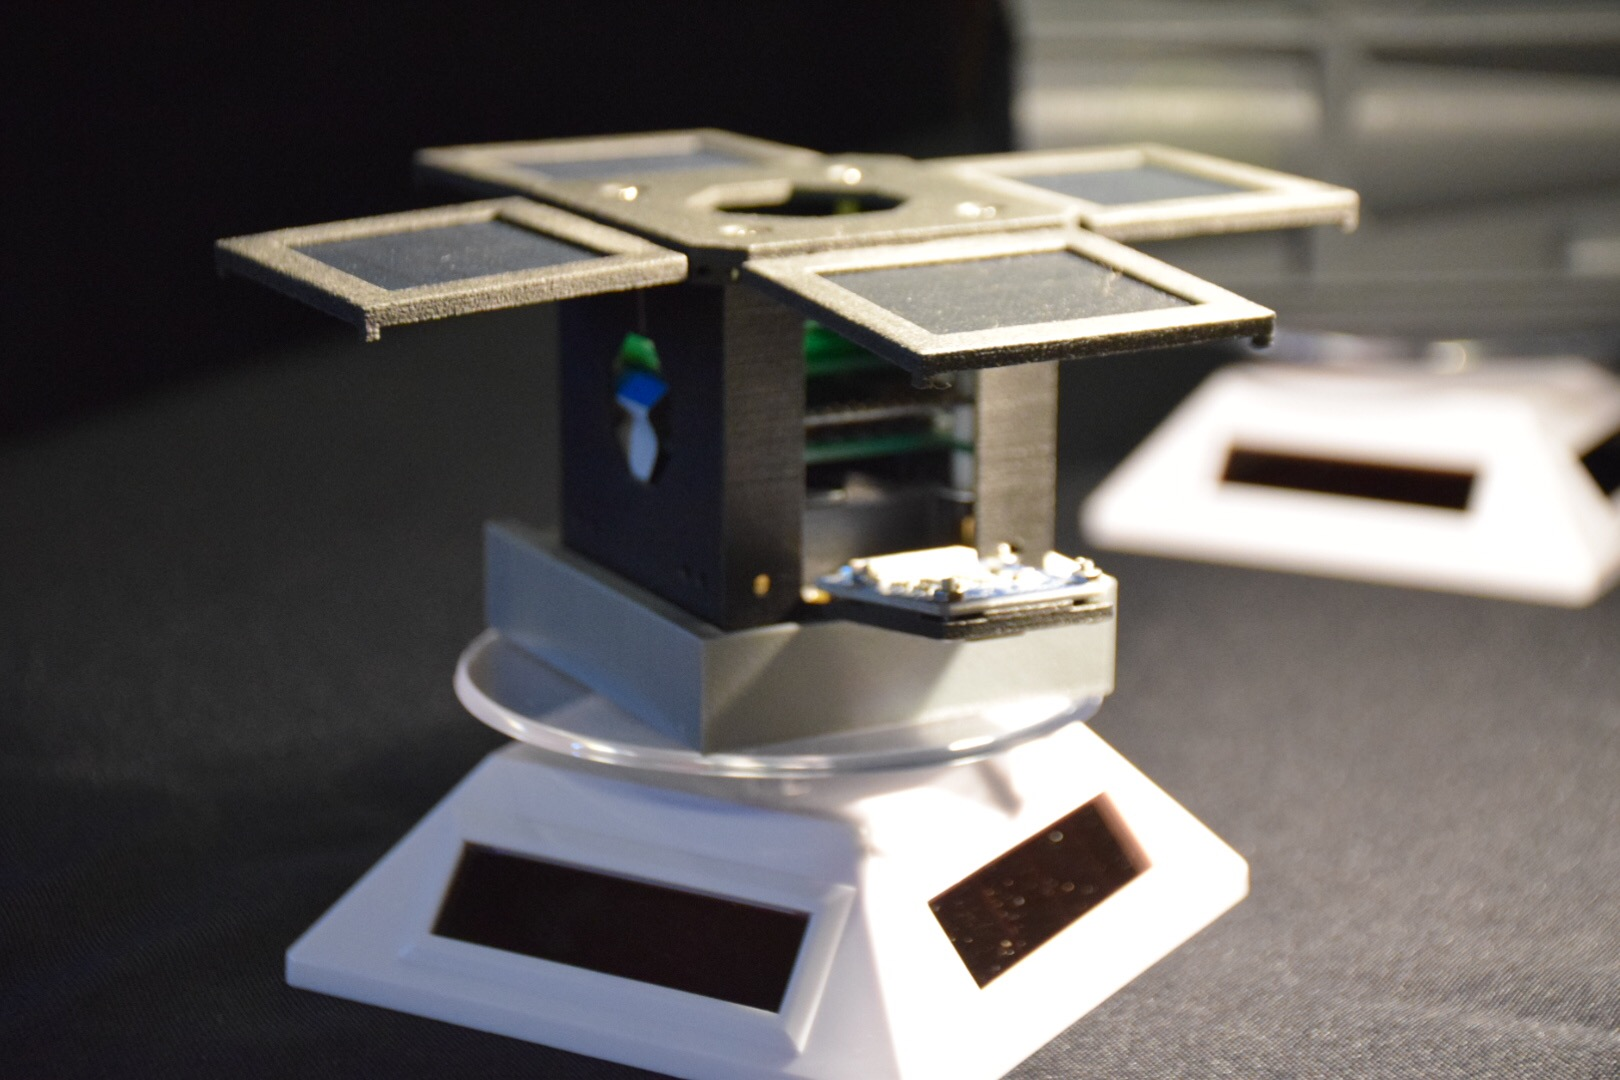 3D printing and the carbon composite for mini satellites - The Discovery 1a engineering model on display at the 3rd PocketQube workshop in Glasgow, Scotland. Courtesy of Mini-Cubes